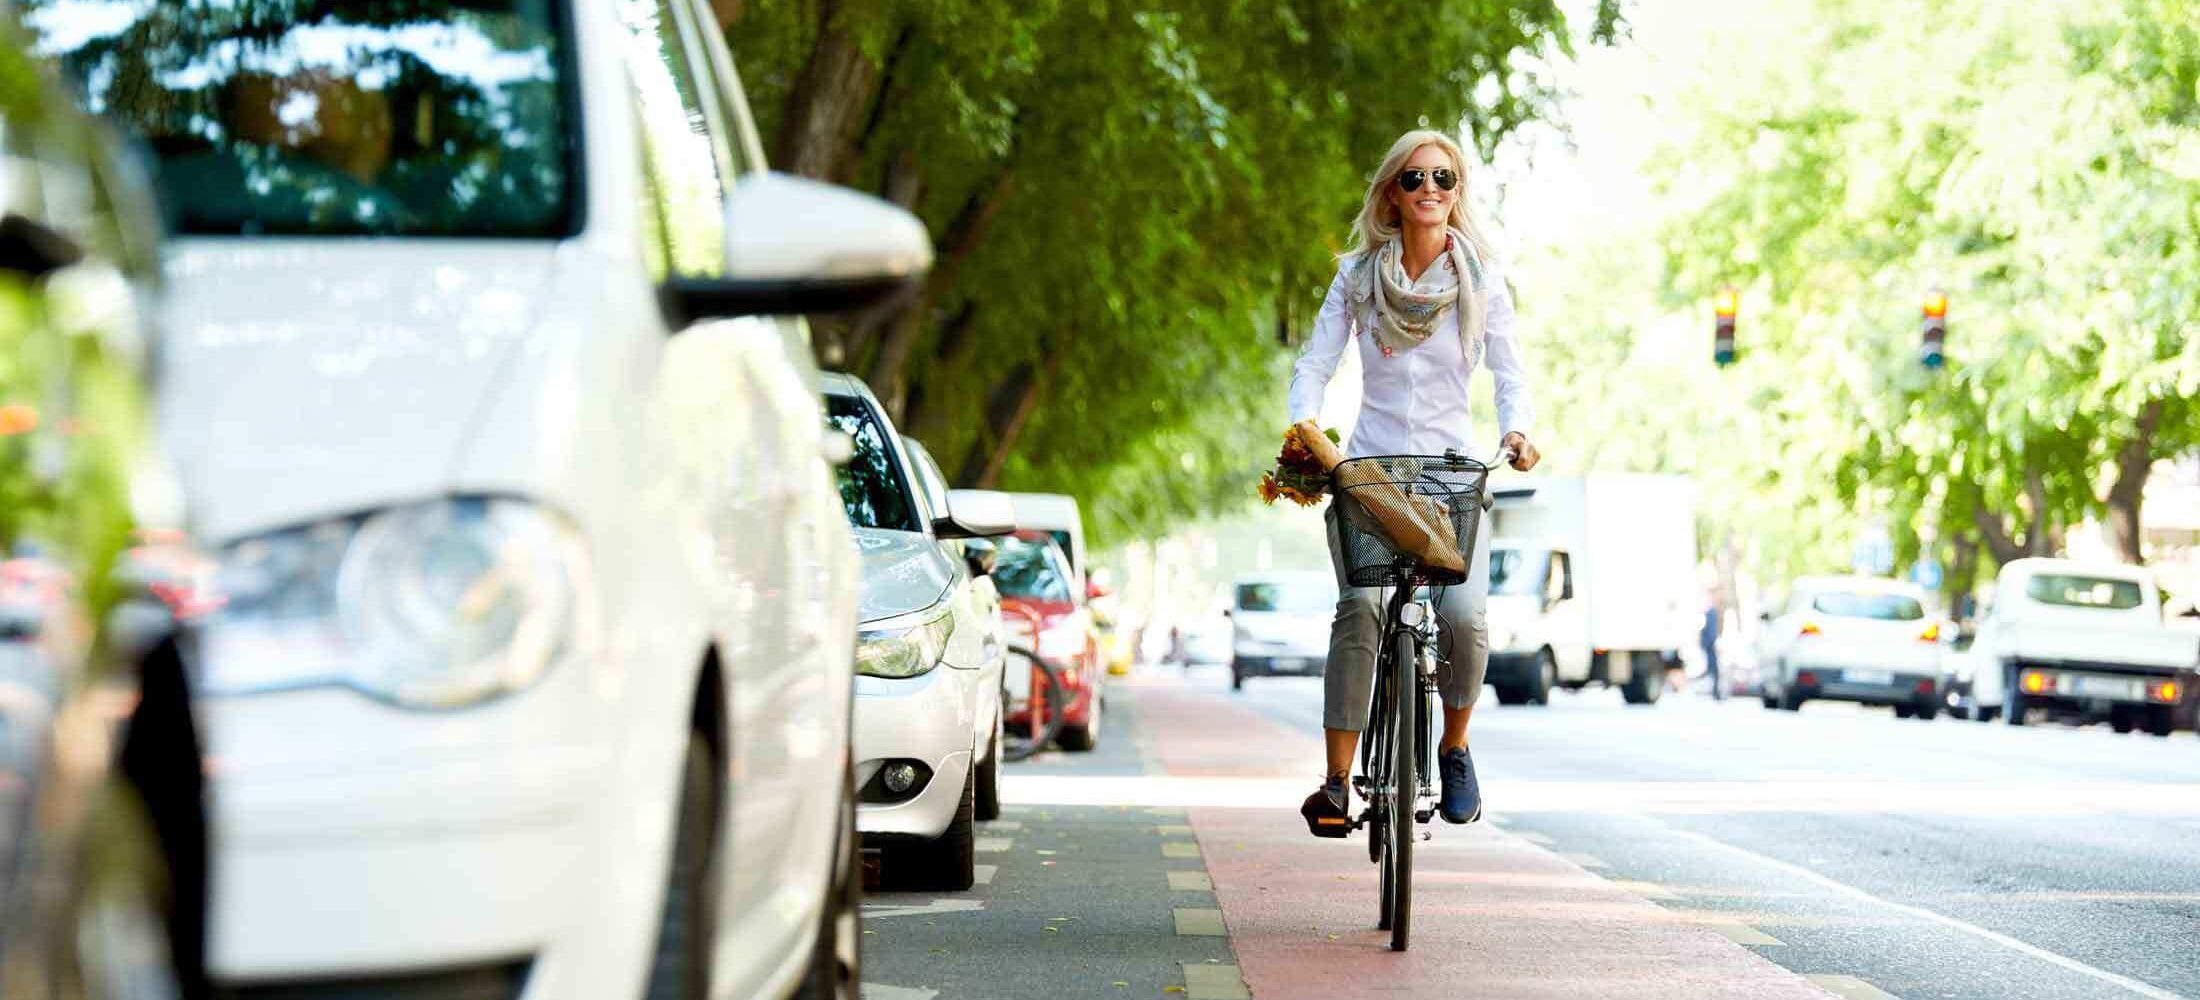 bicycle-accident-attorney